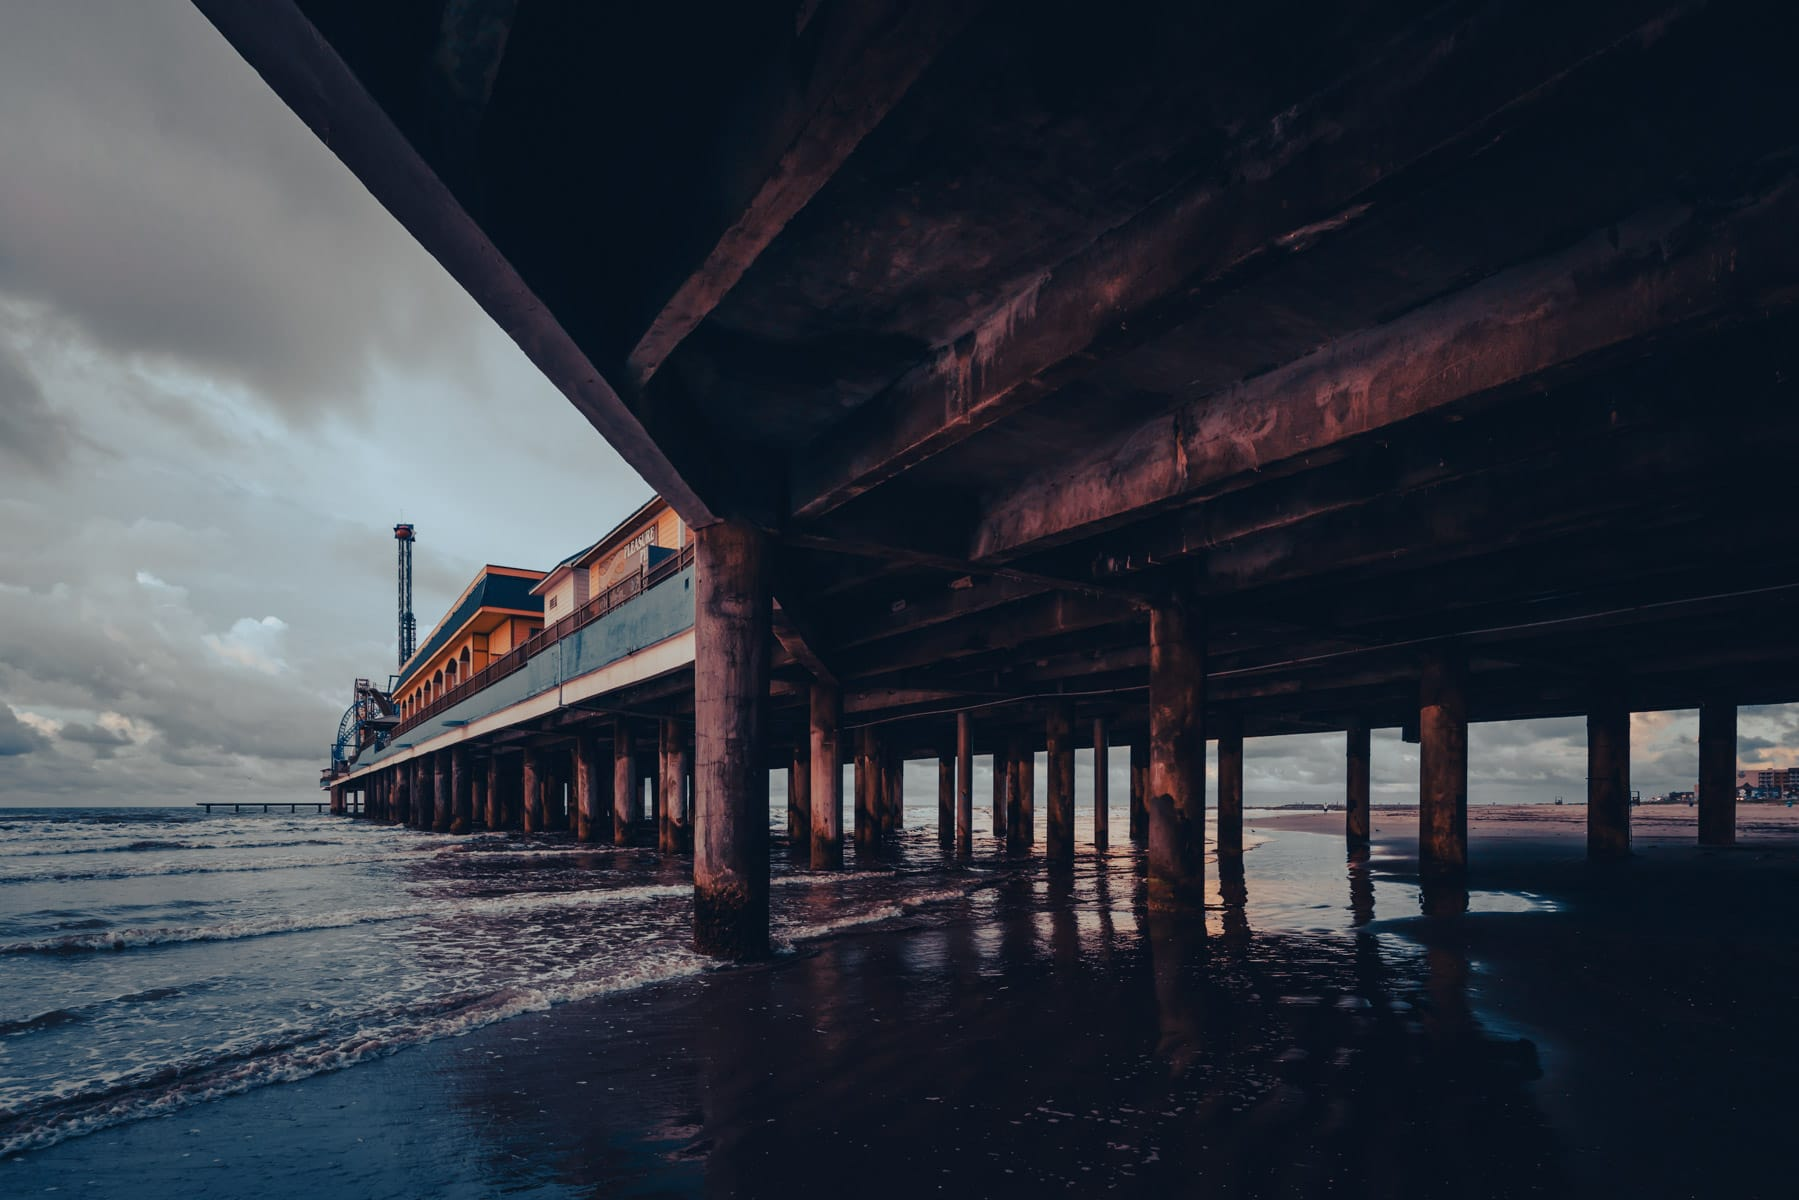 The Galveston Island Historic Pleasure Pier stretches into the waters of the Gulf of Mexico.